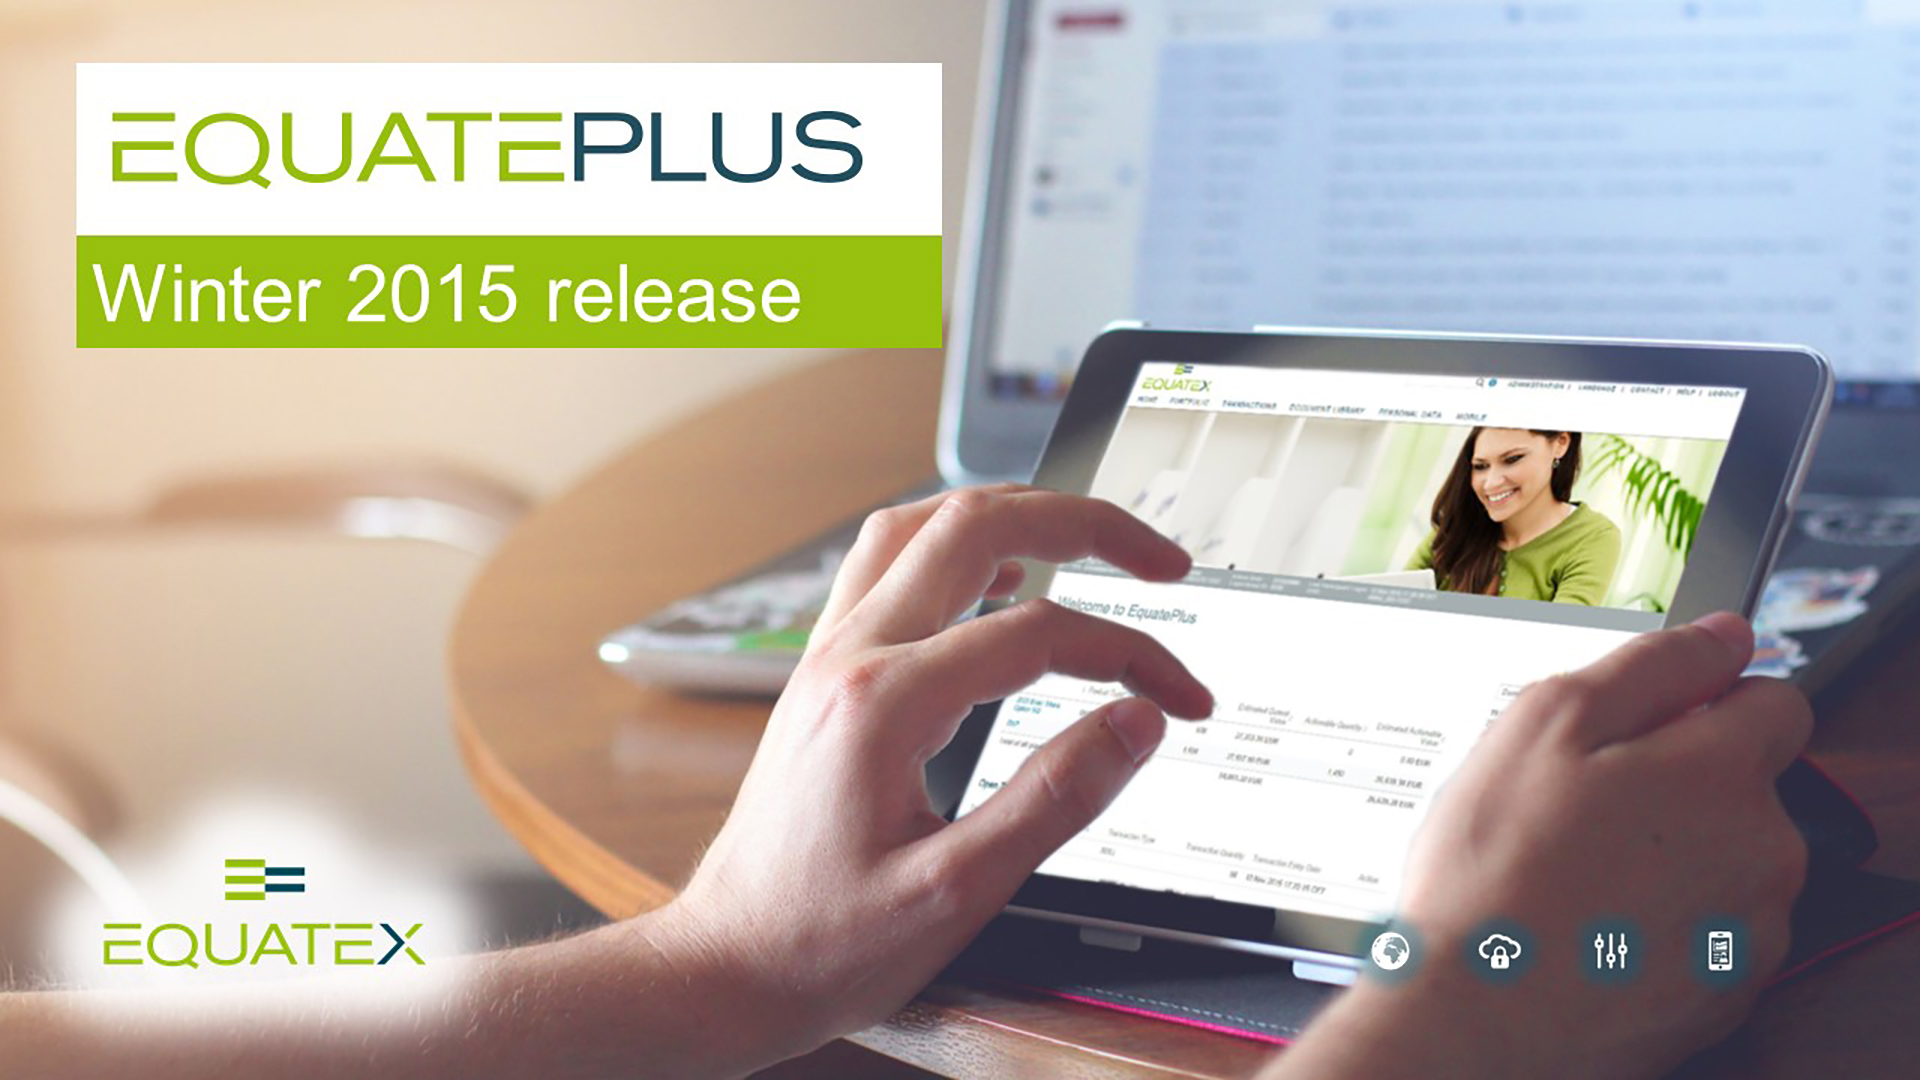 EquatePlus winter 2015 video screenshot